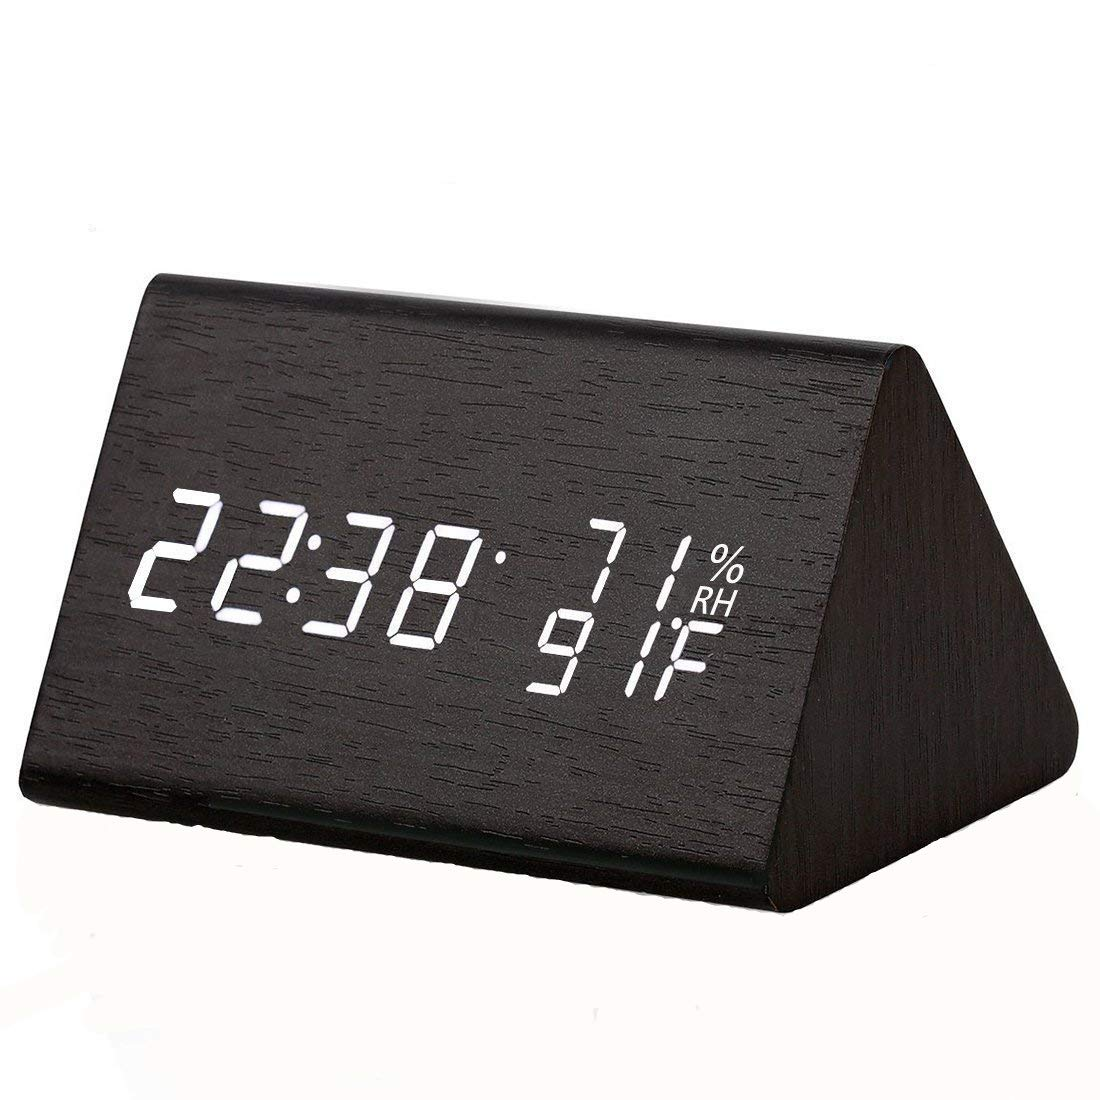 Digital Alarm Clock 3 Brightness Levels LED Light 3 Alarm Sets Voice Control System Dual Powered Wood Clock with Temperature and Humidity Detect for Home Bedroom Office Desk Travel Kids Heavy Sleepers